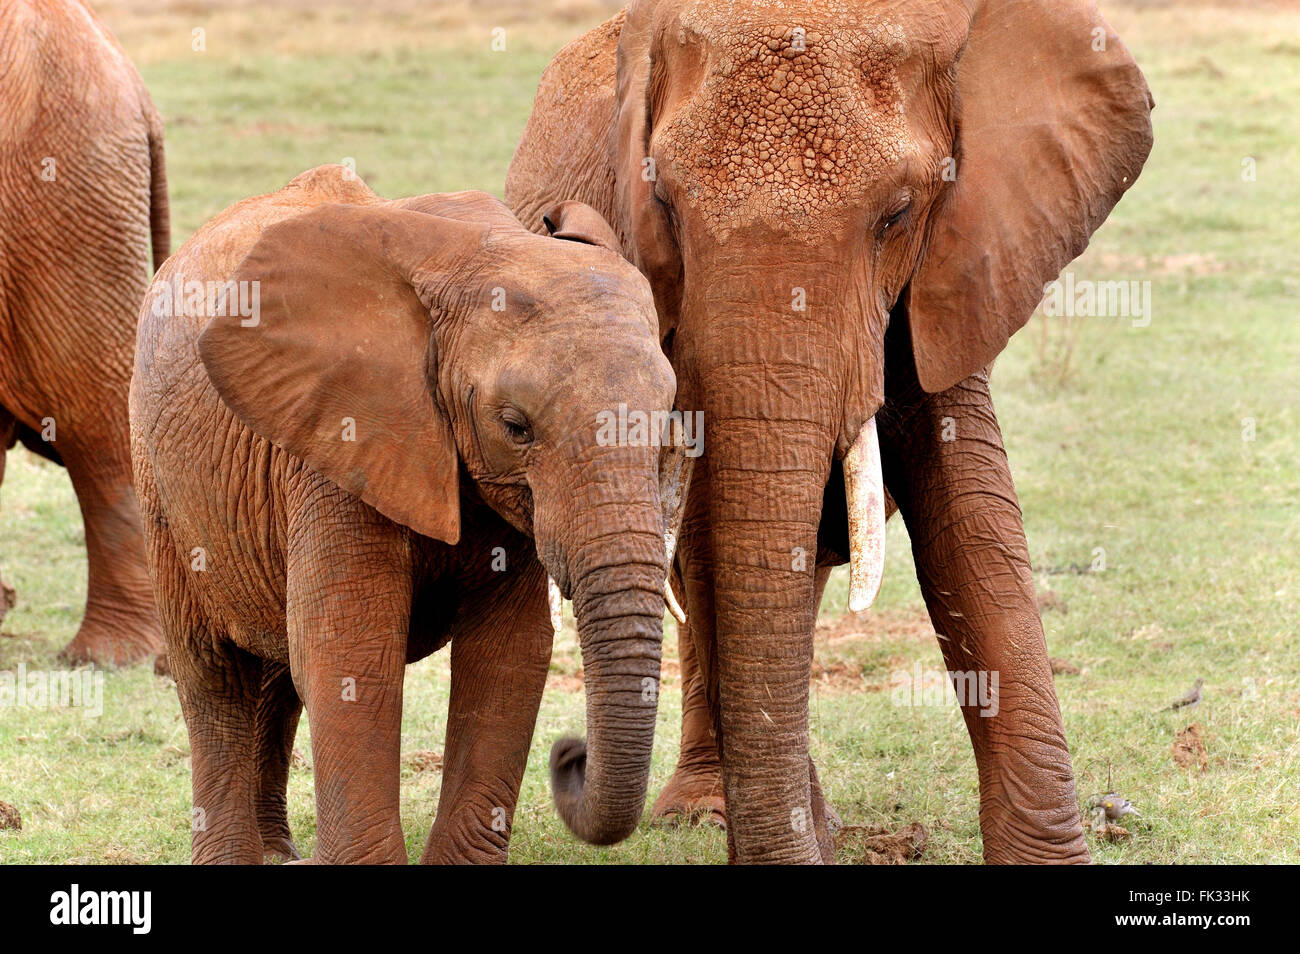 Young Elephant, Loxodonta africana, and its sister with tender feelings Stock Photo